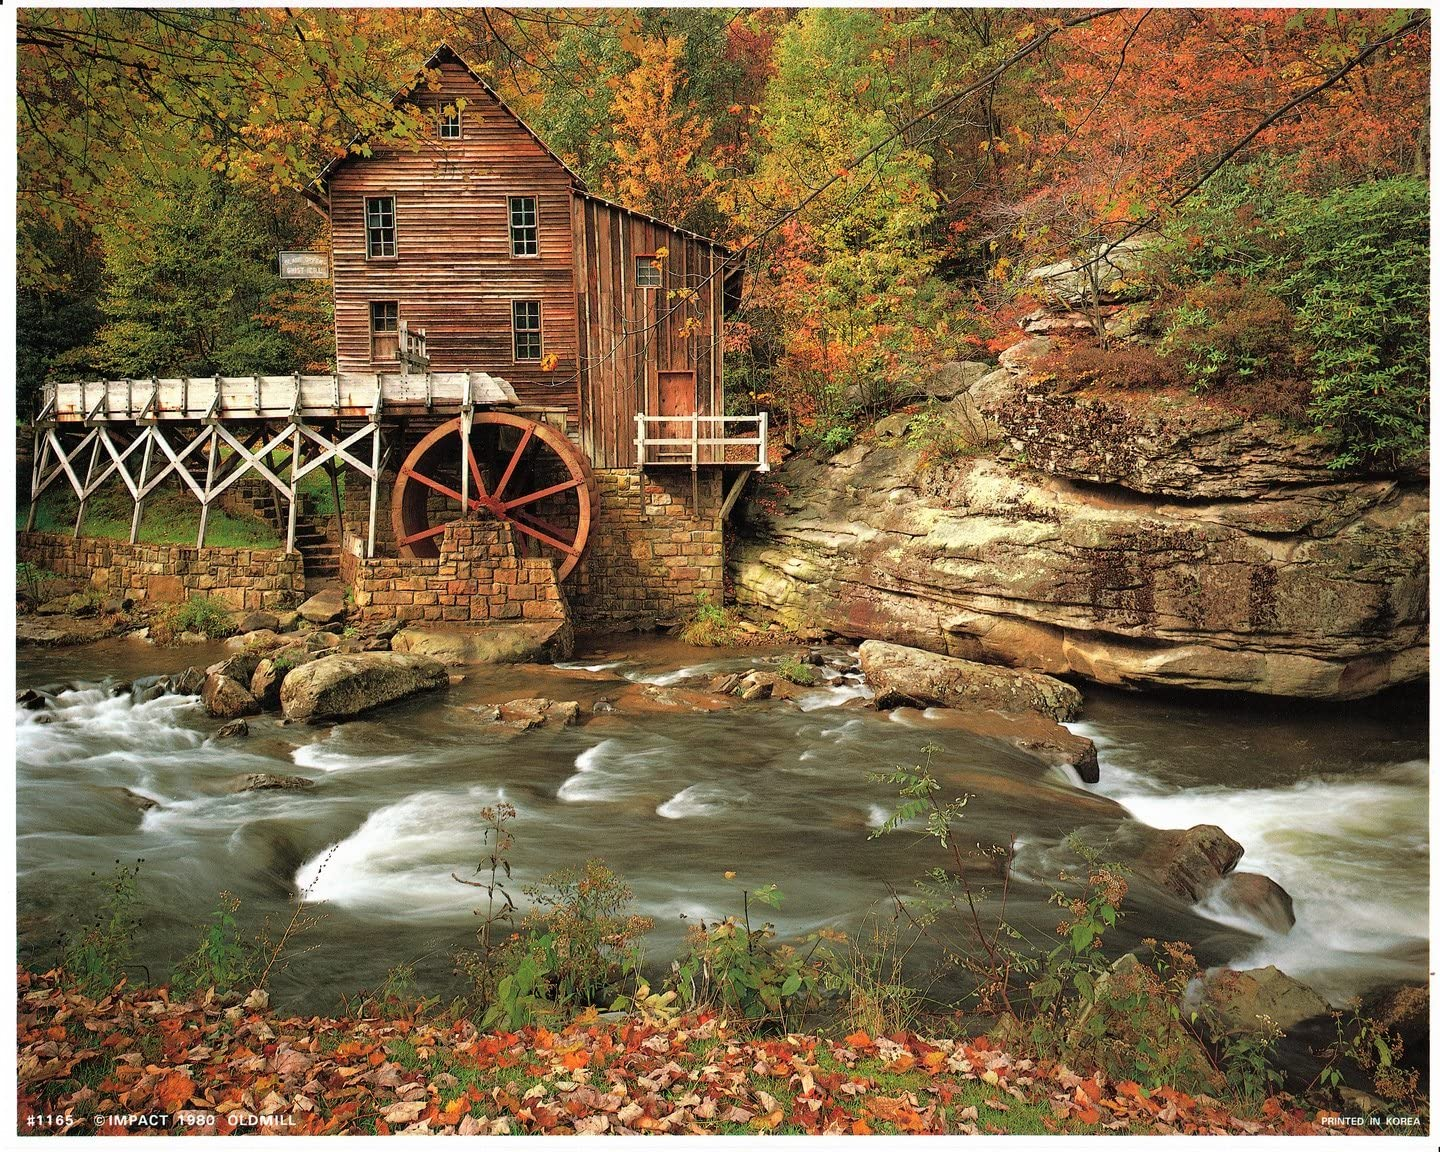 Glade Creek Mill Nature Trees Landscape Wall Decor Art Print Poster (16x20)